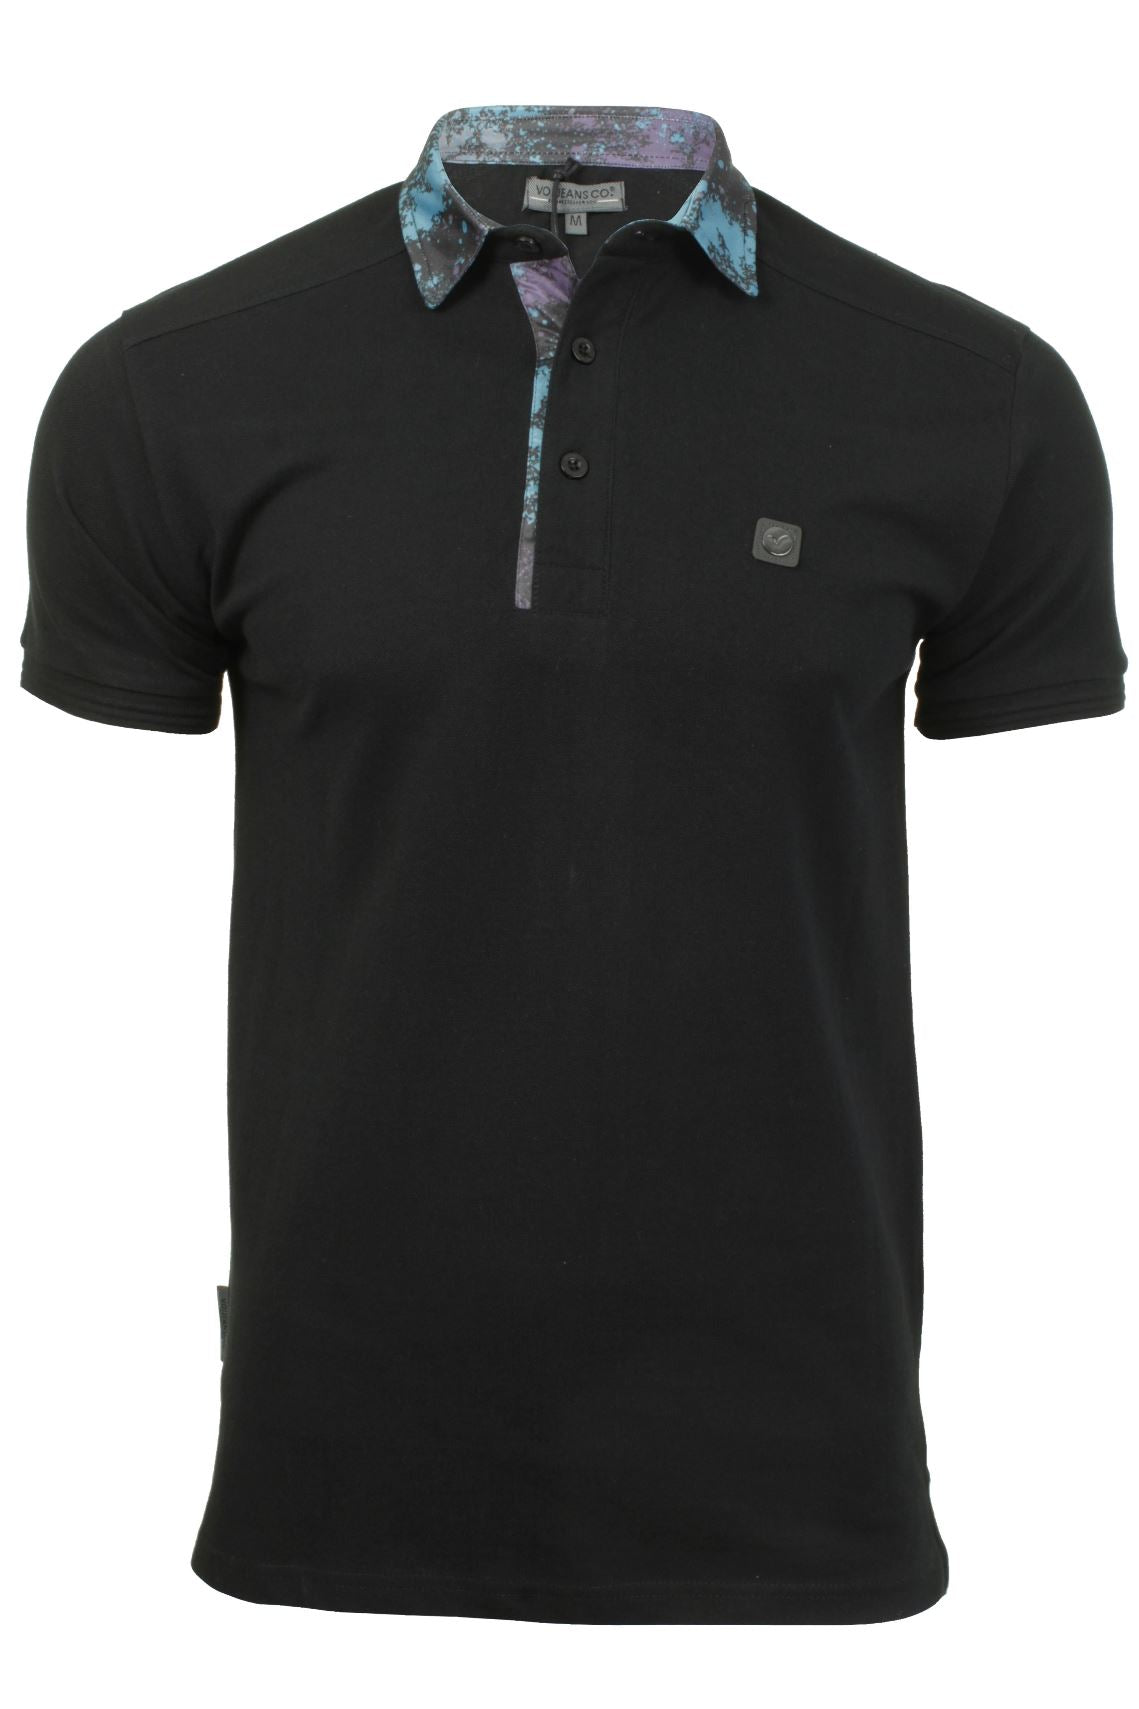 Mens Polo T-Shirt by Voi Jeans 'Ghost' Short Sleeved-2